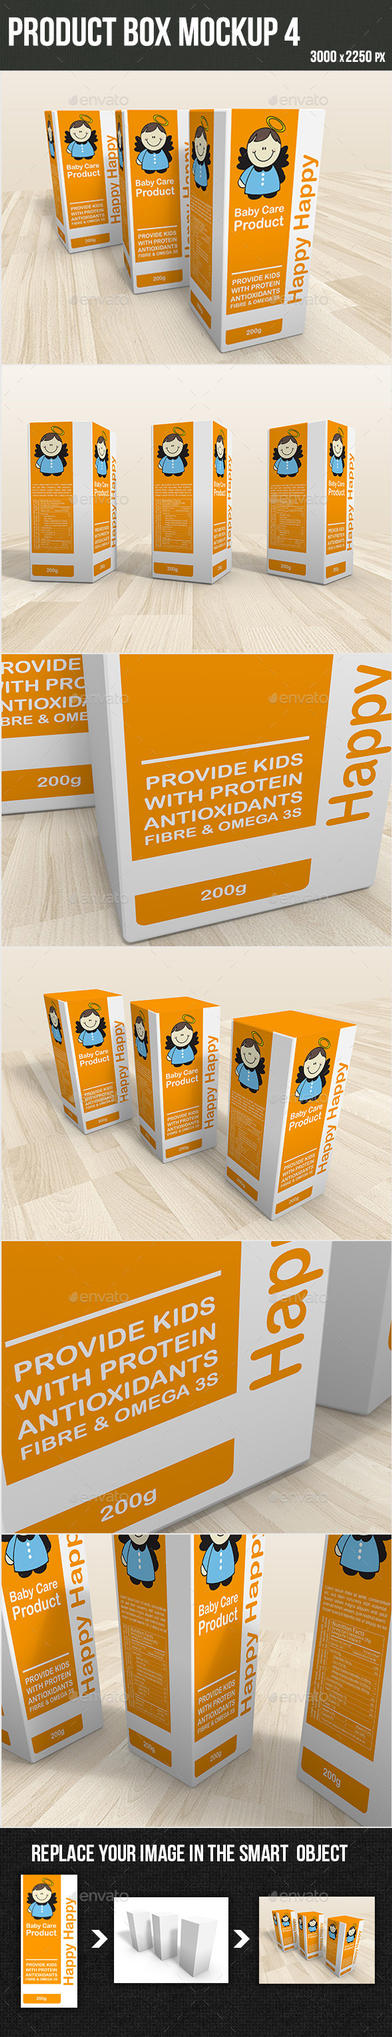 Product Box Mockup4 by graphickey